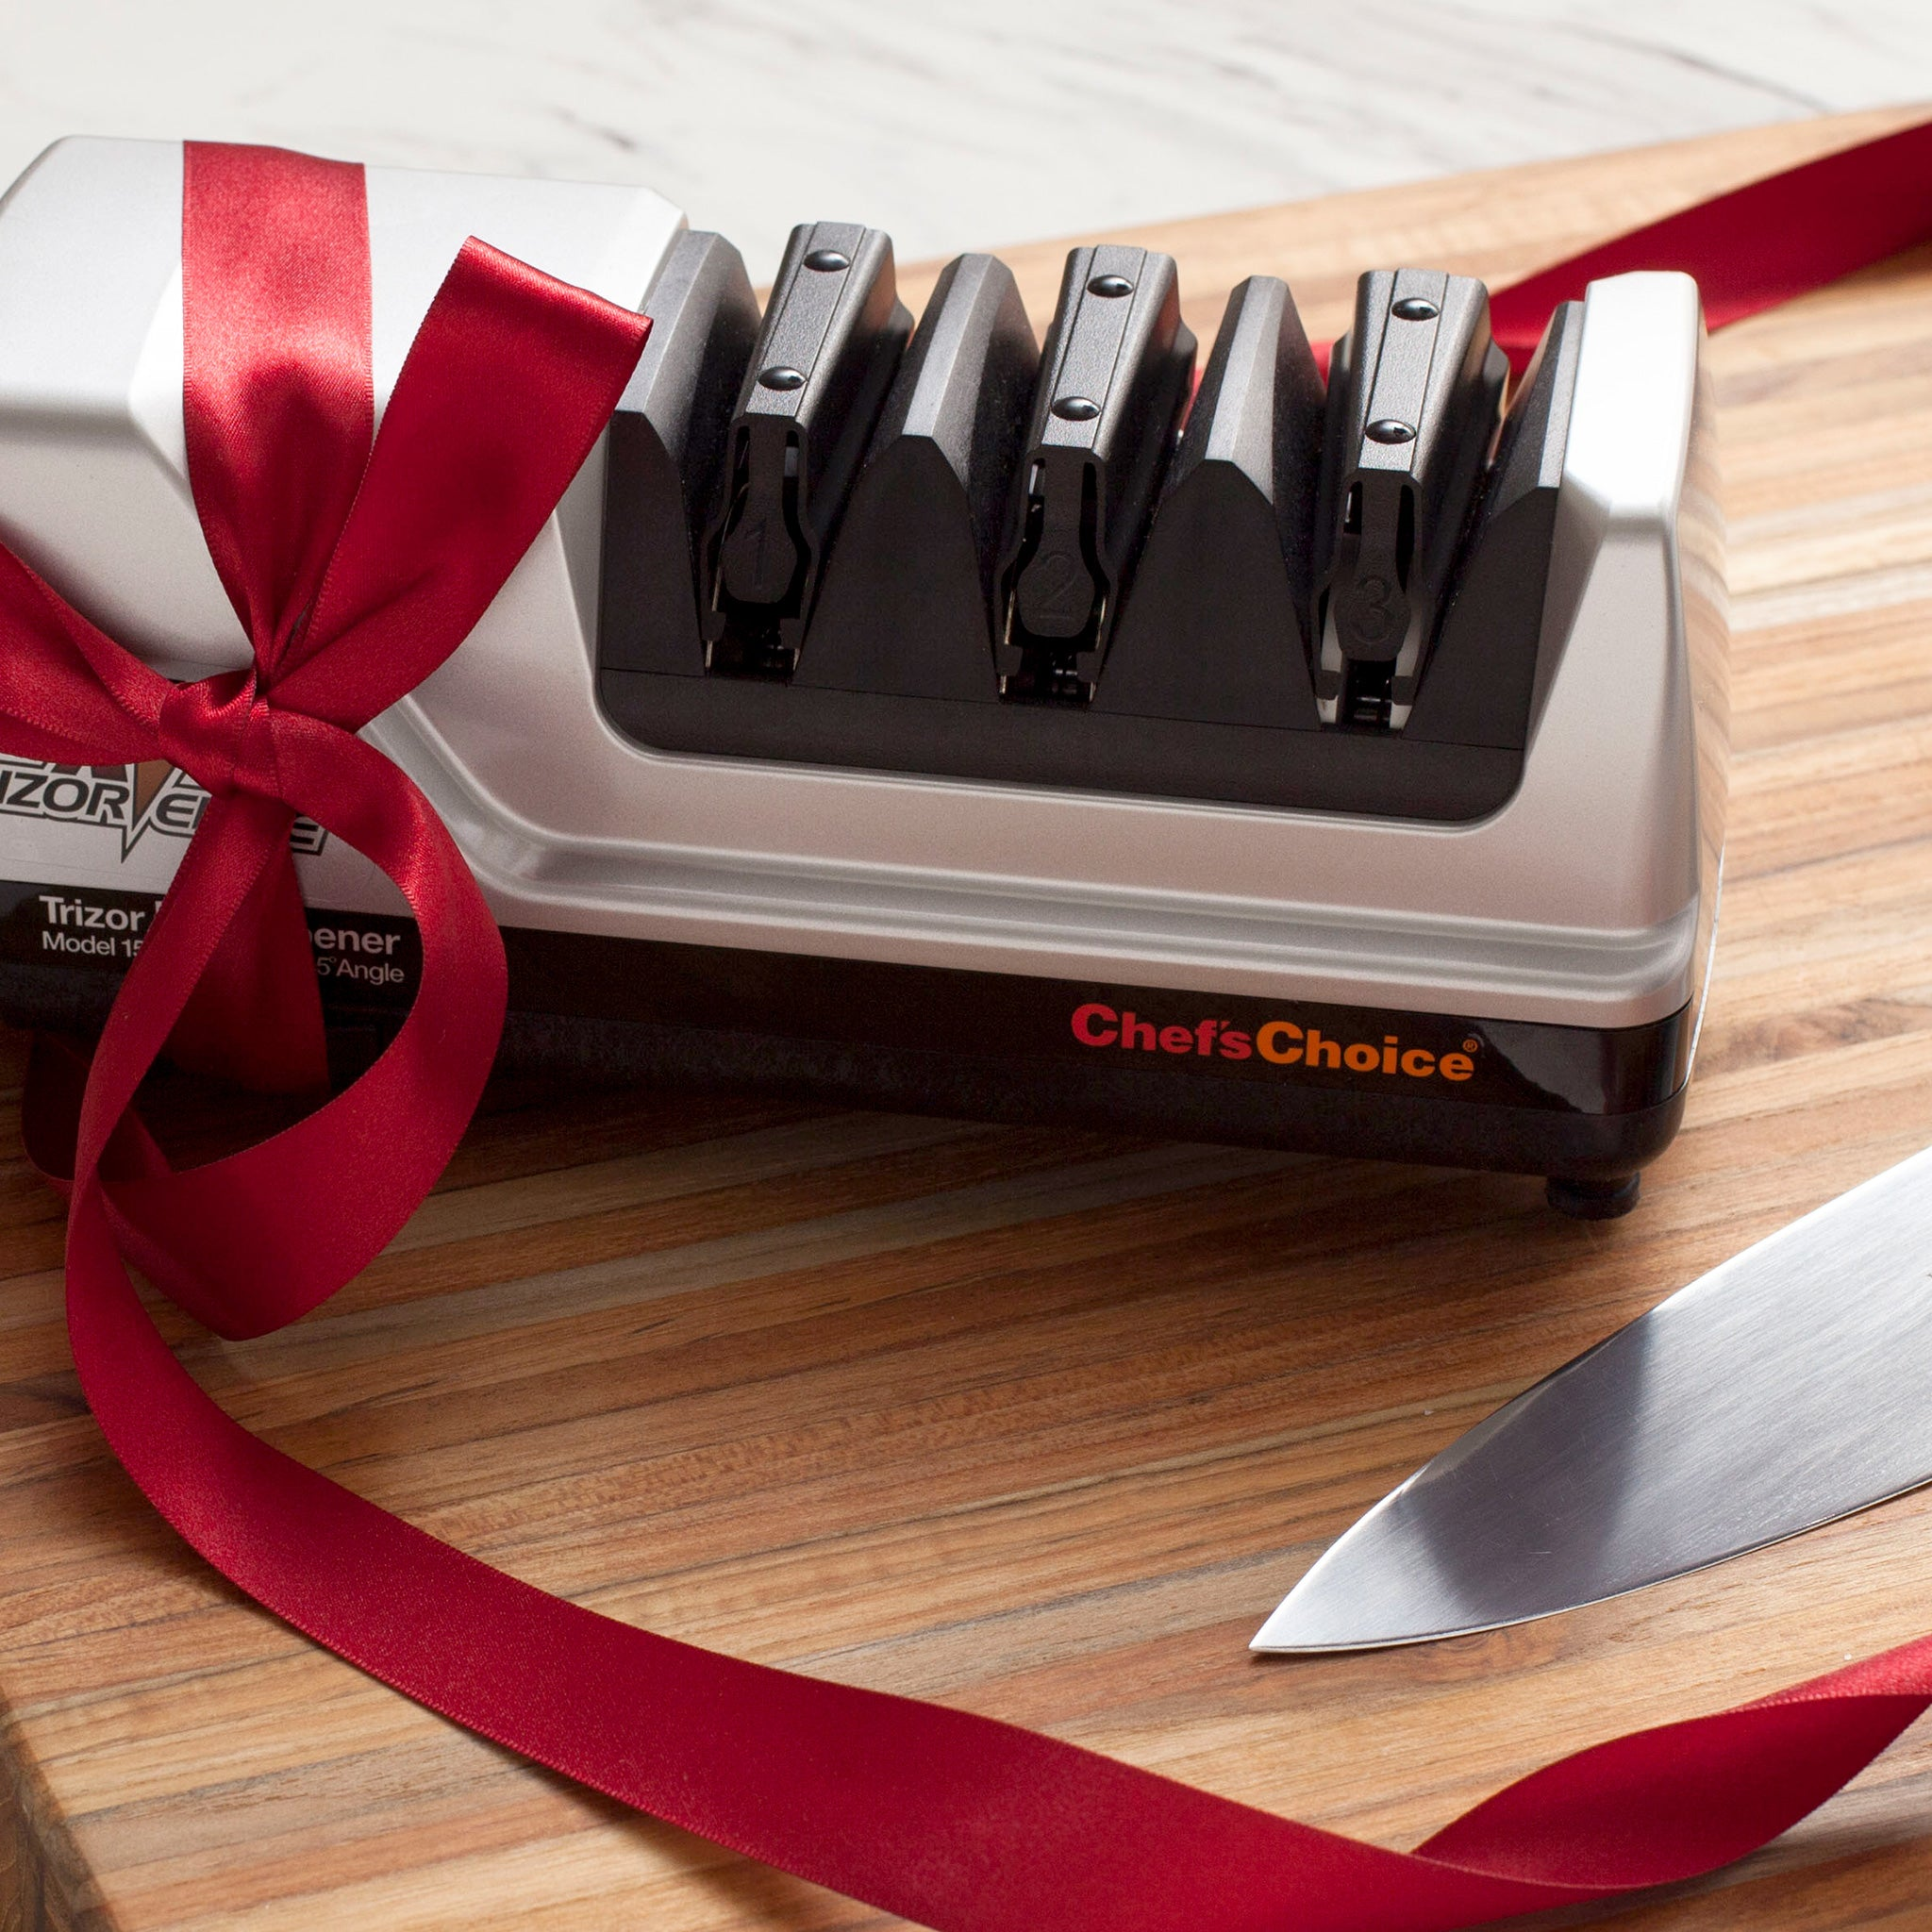 Chef's Choice Sharpener